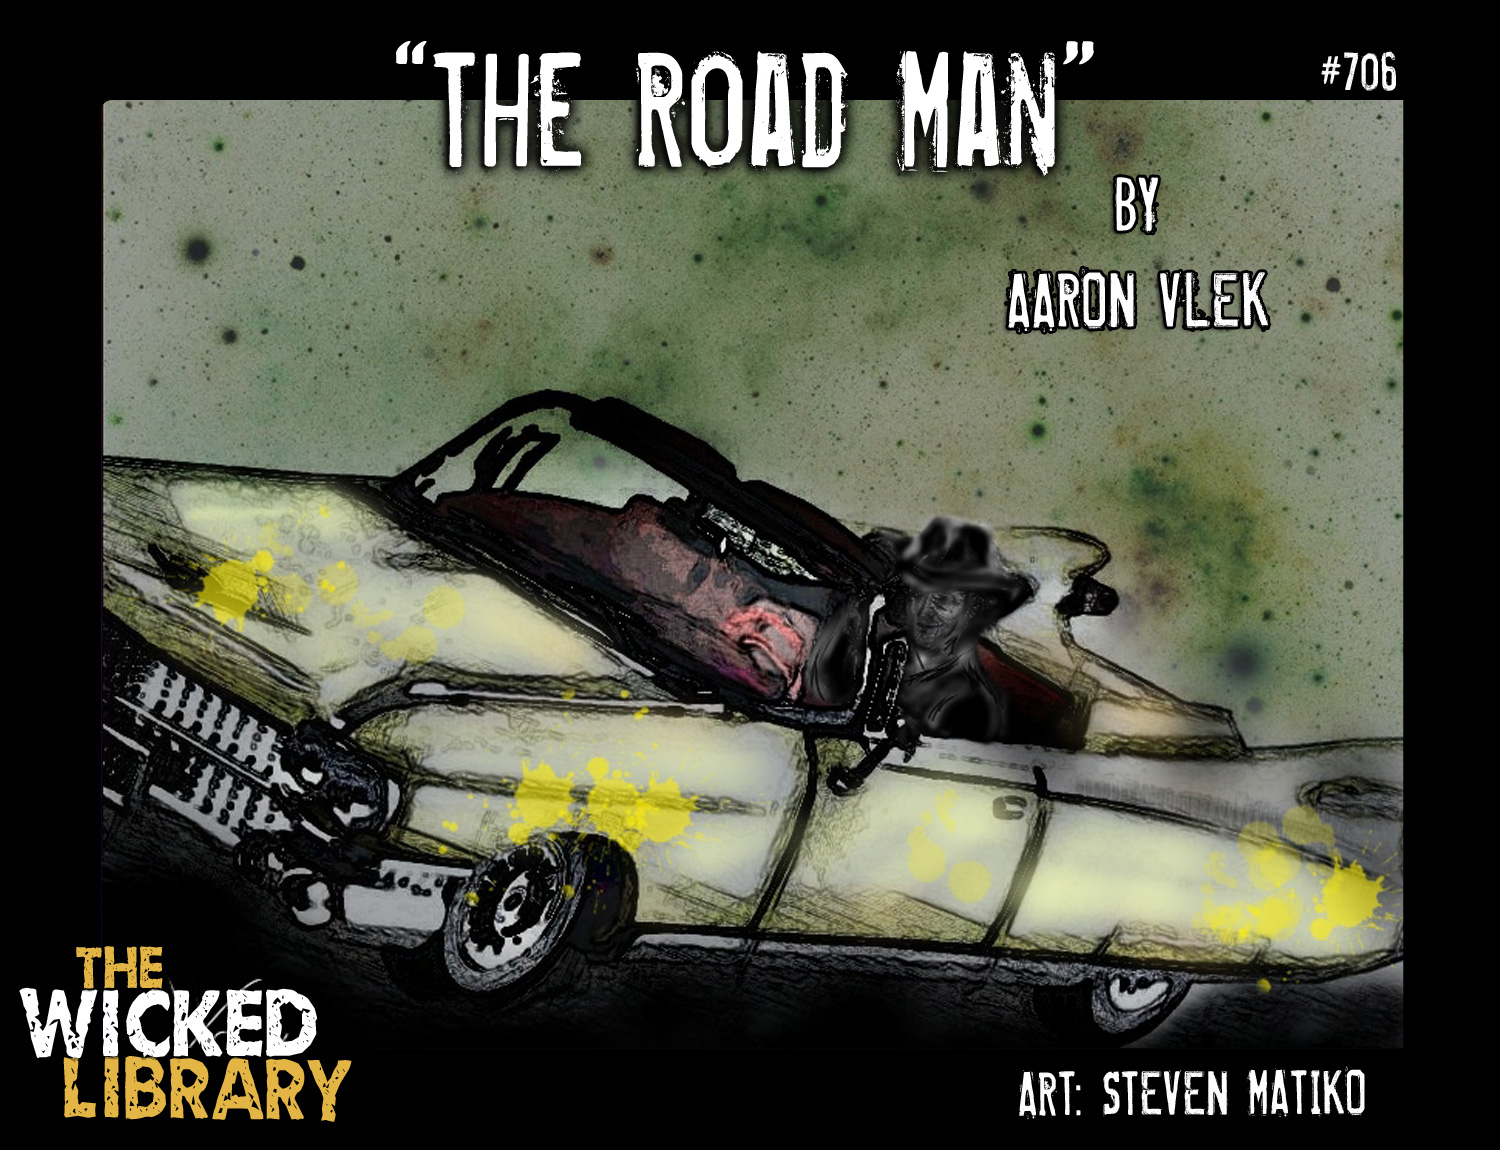 706: The Road Man by Aaron Vlek